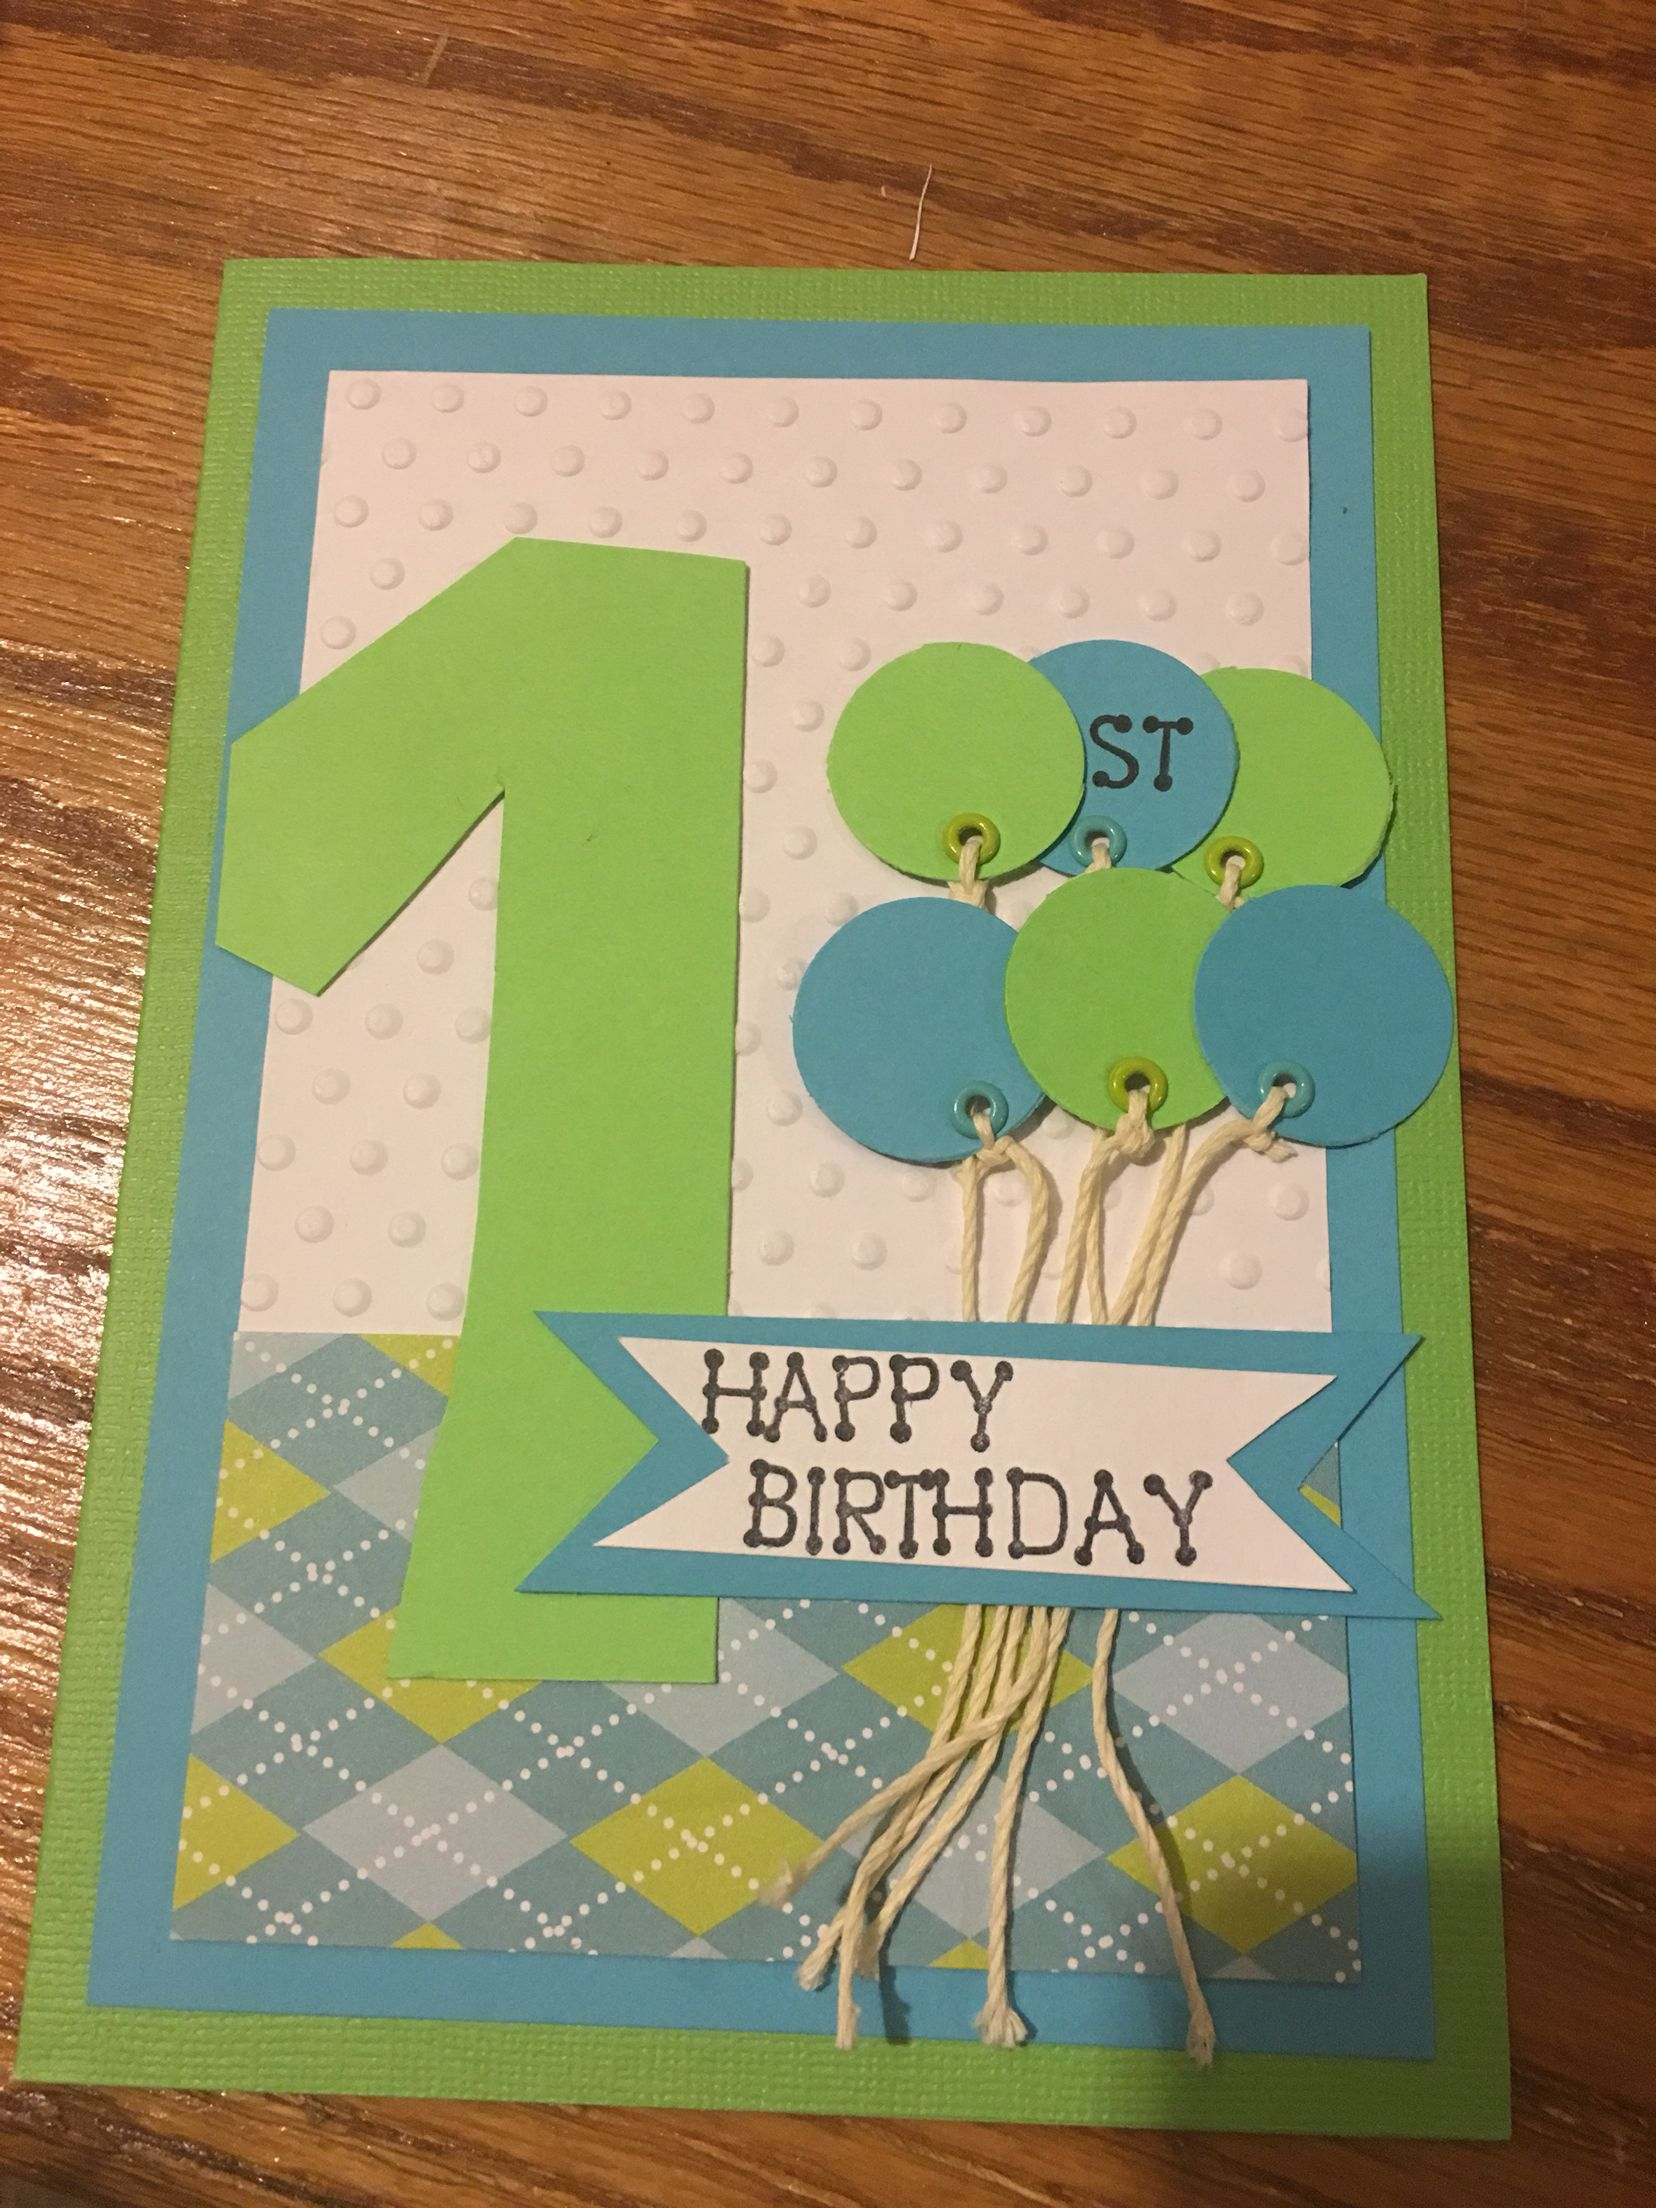 One Year Old Little Boy Birthday Card Cards And